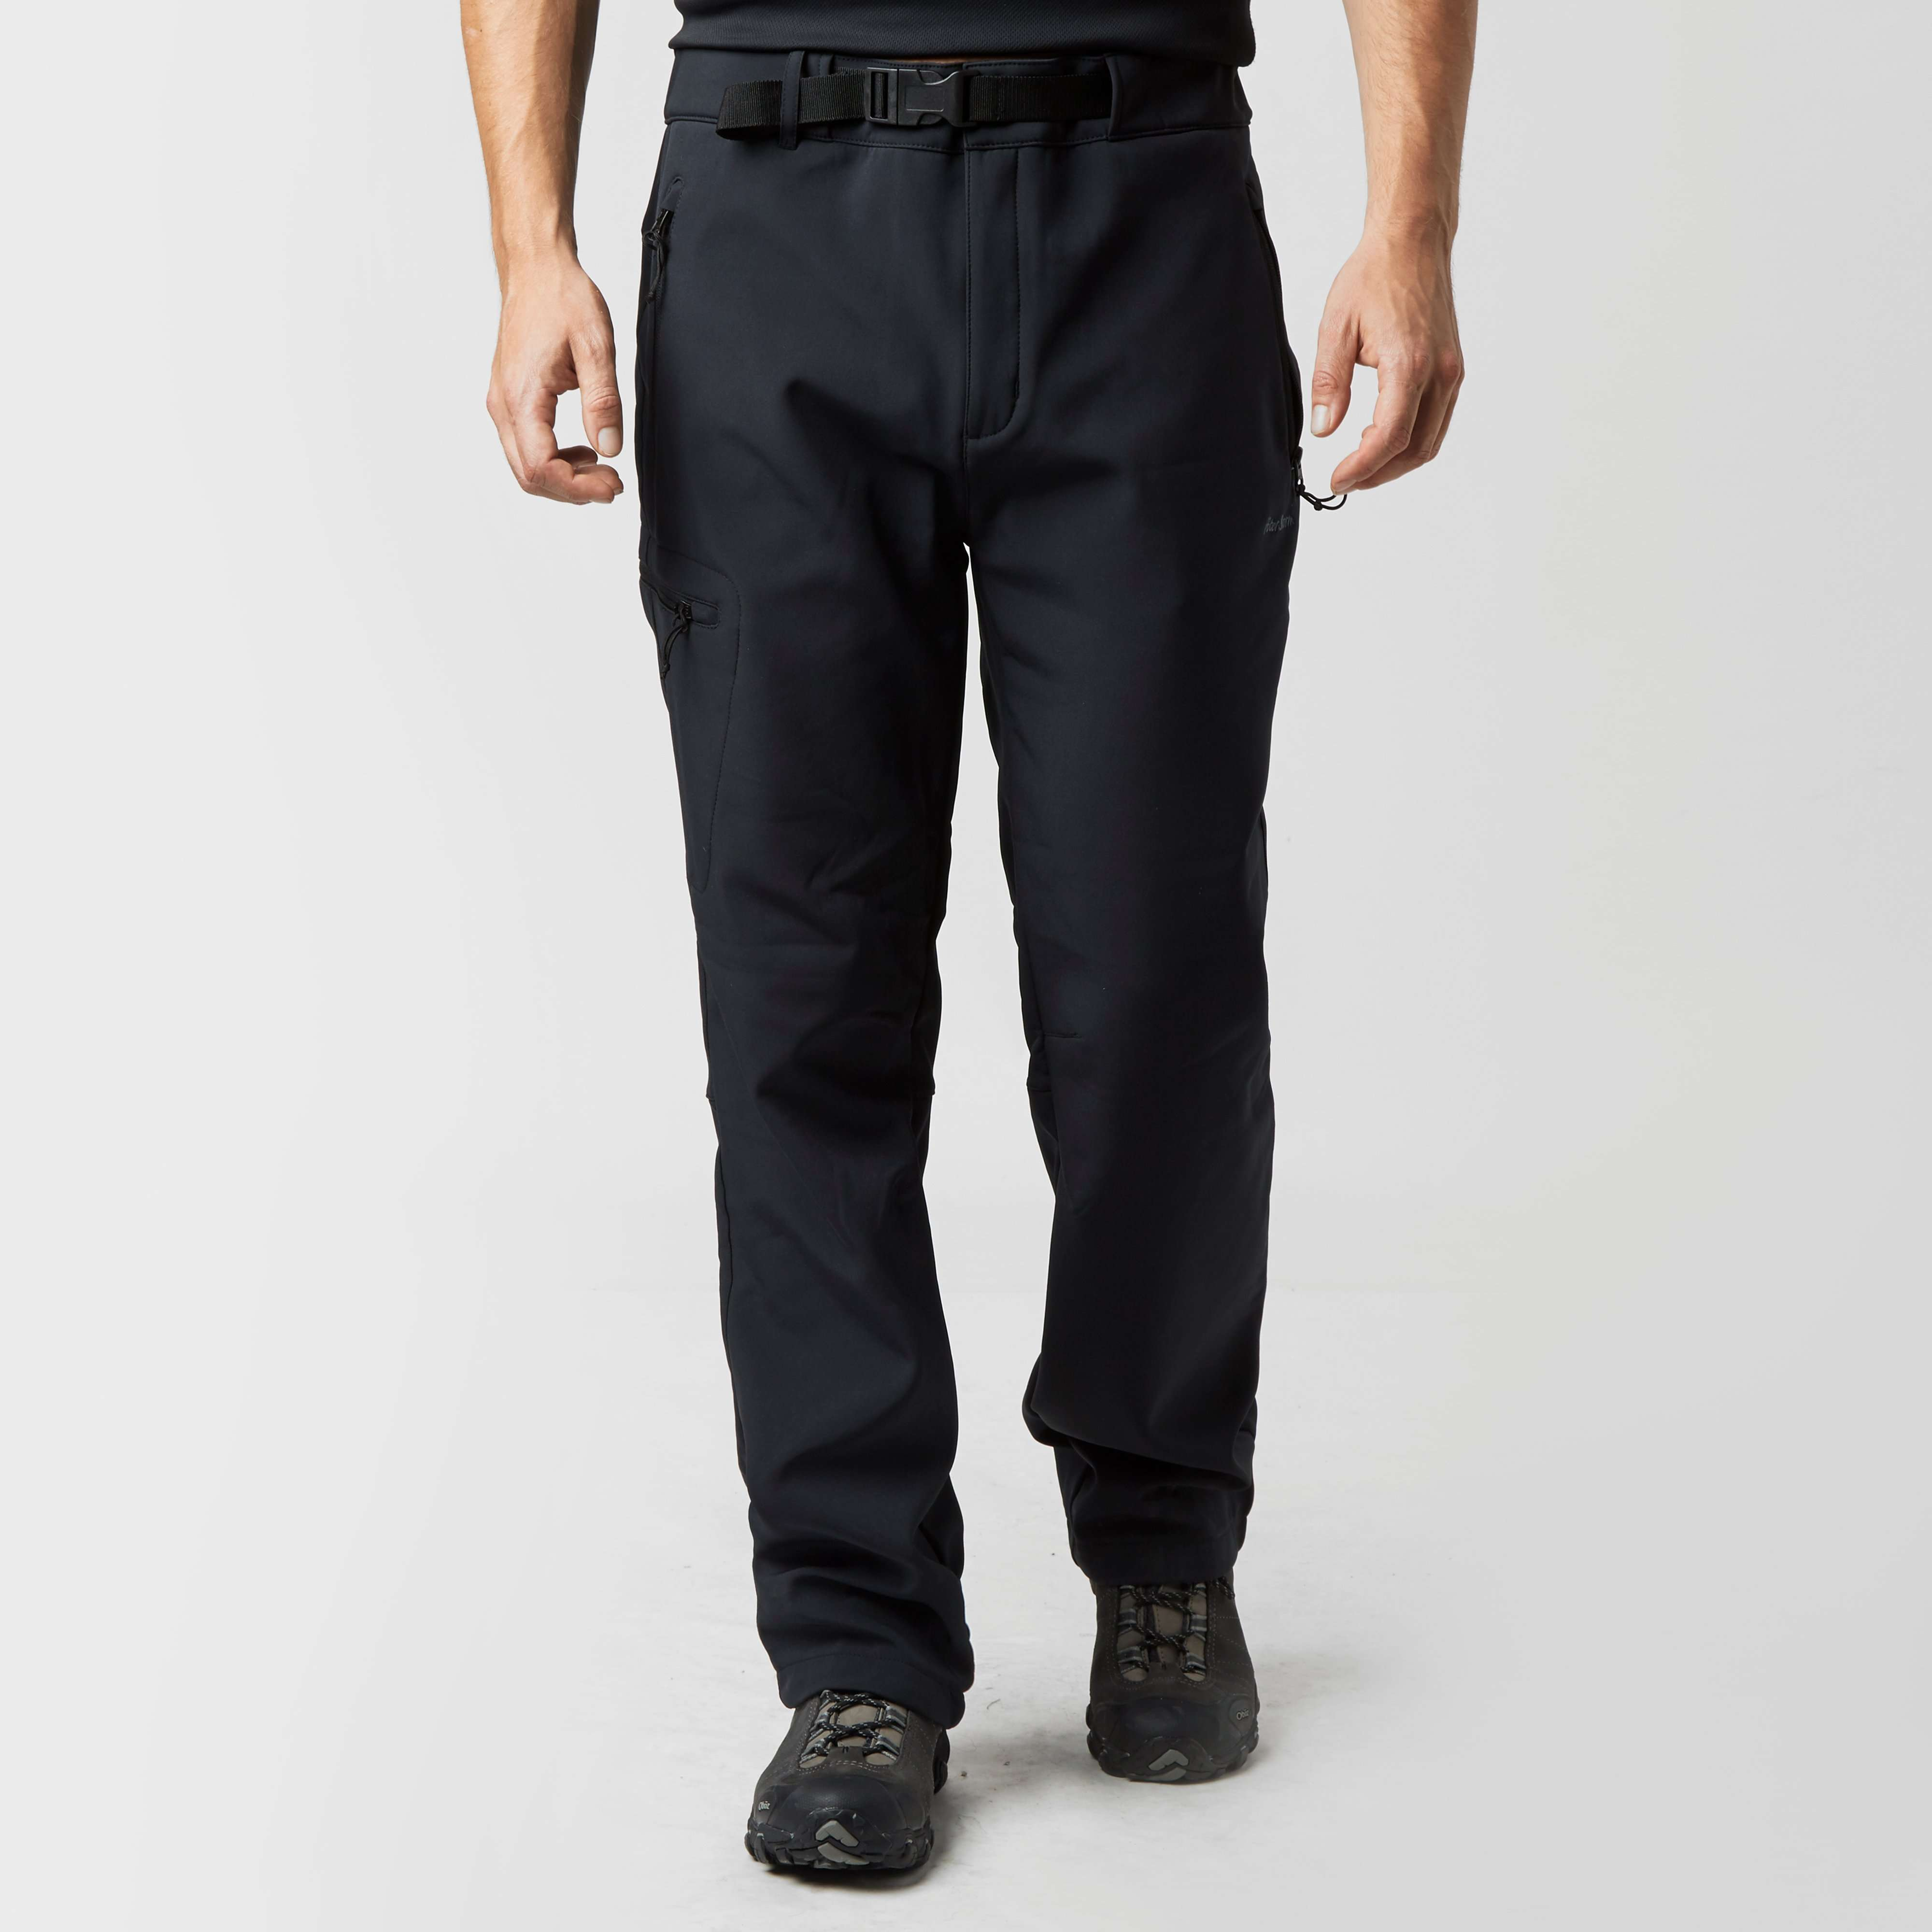 PETER STORM Men's Softshell Trousers